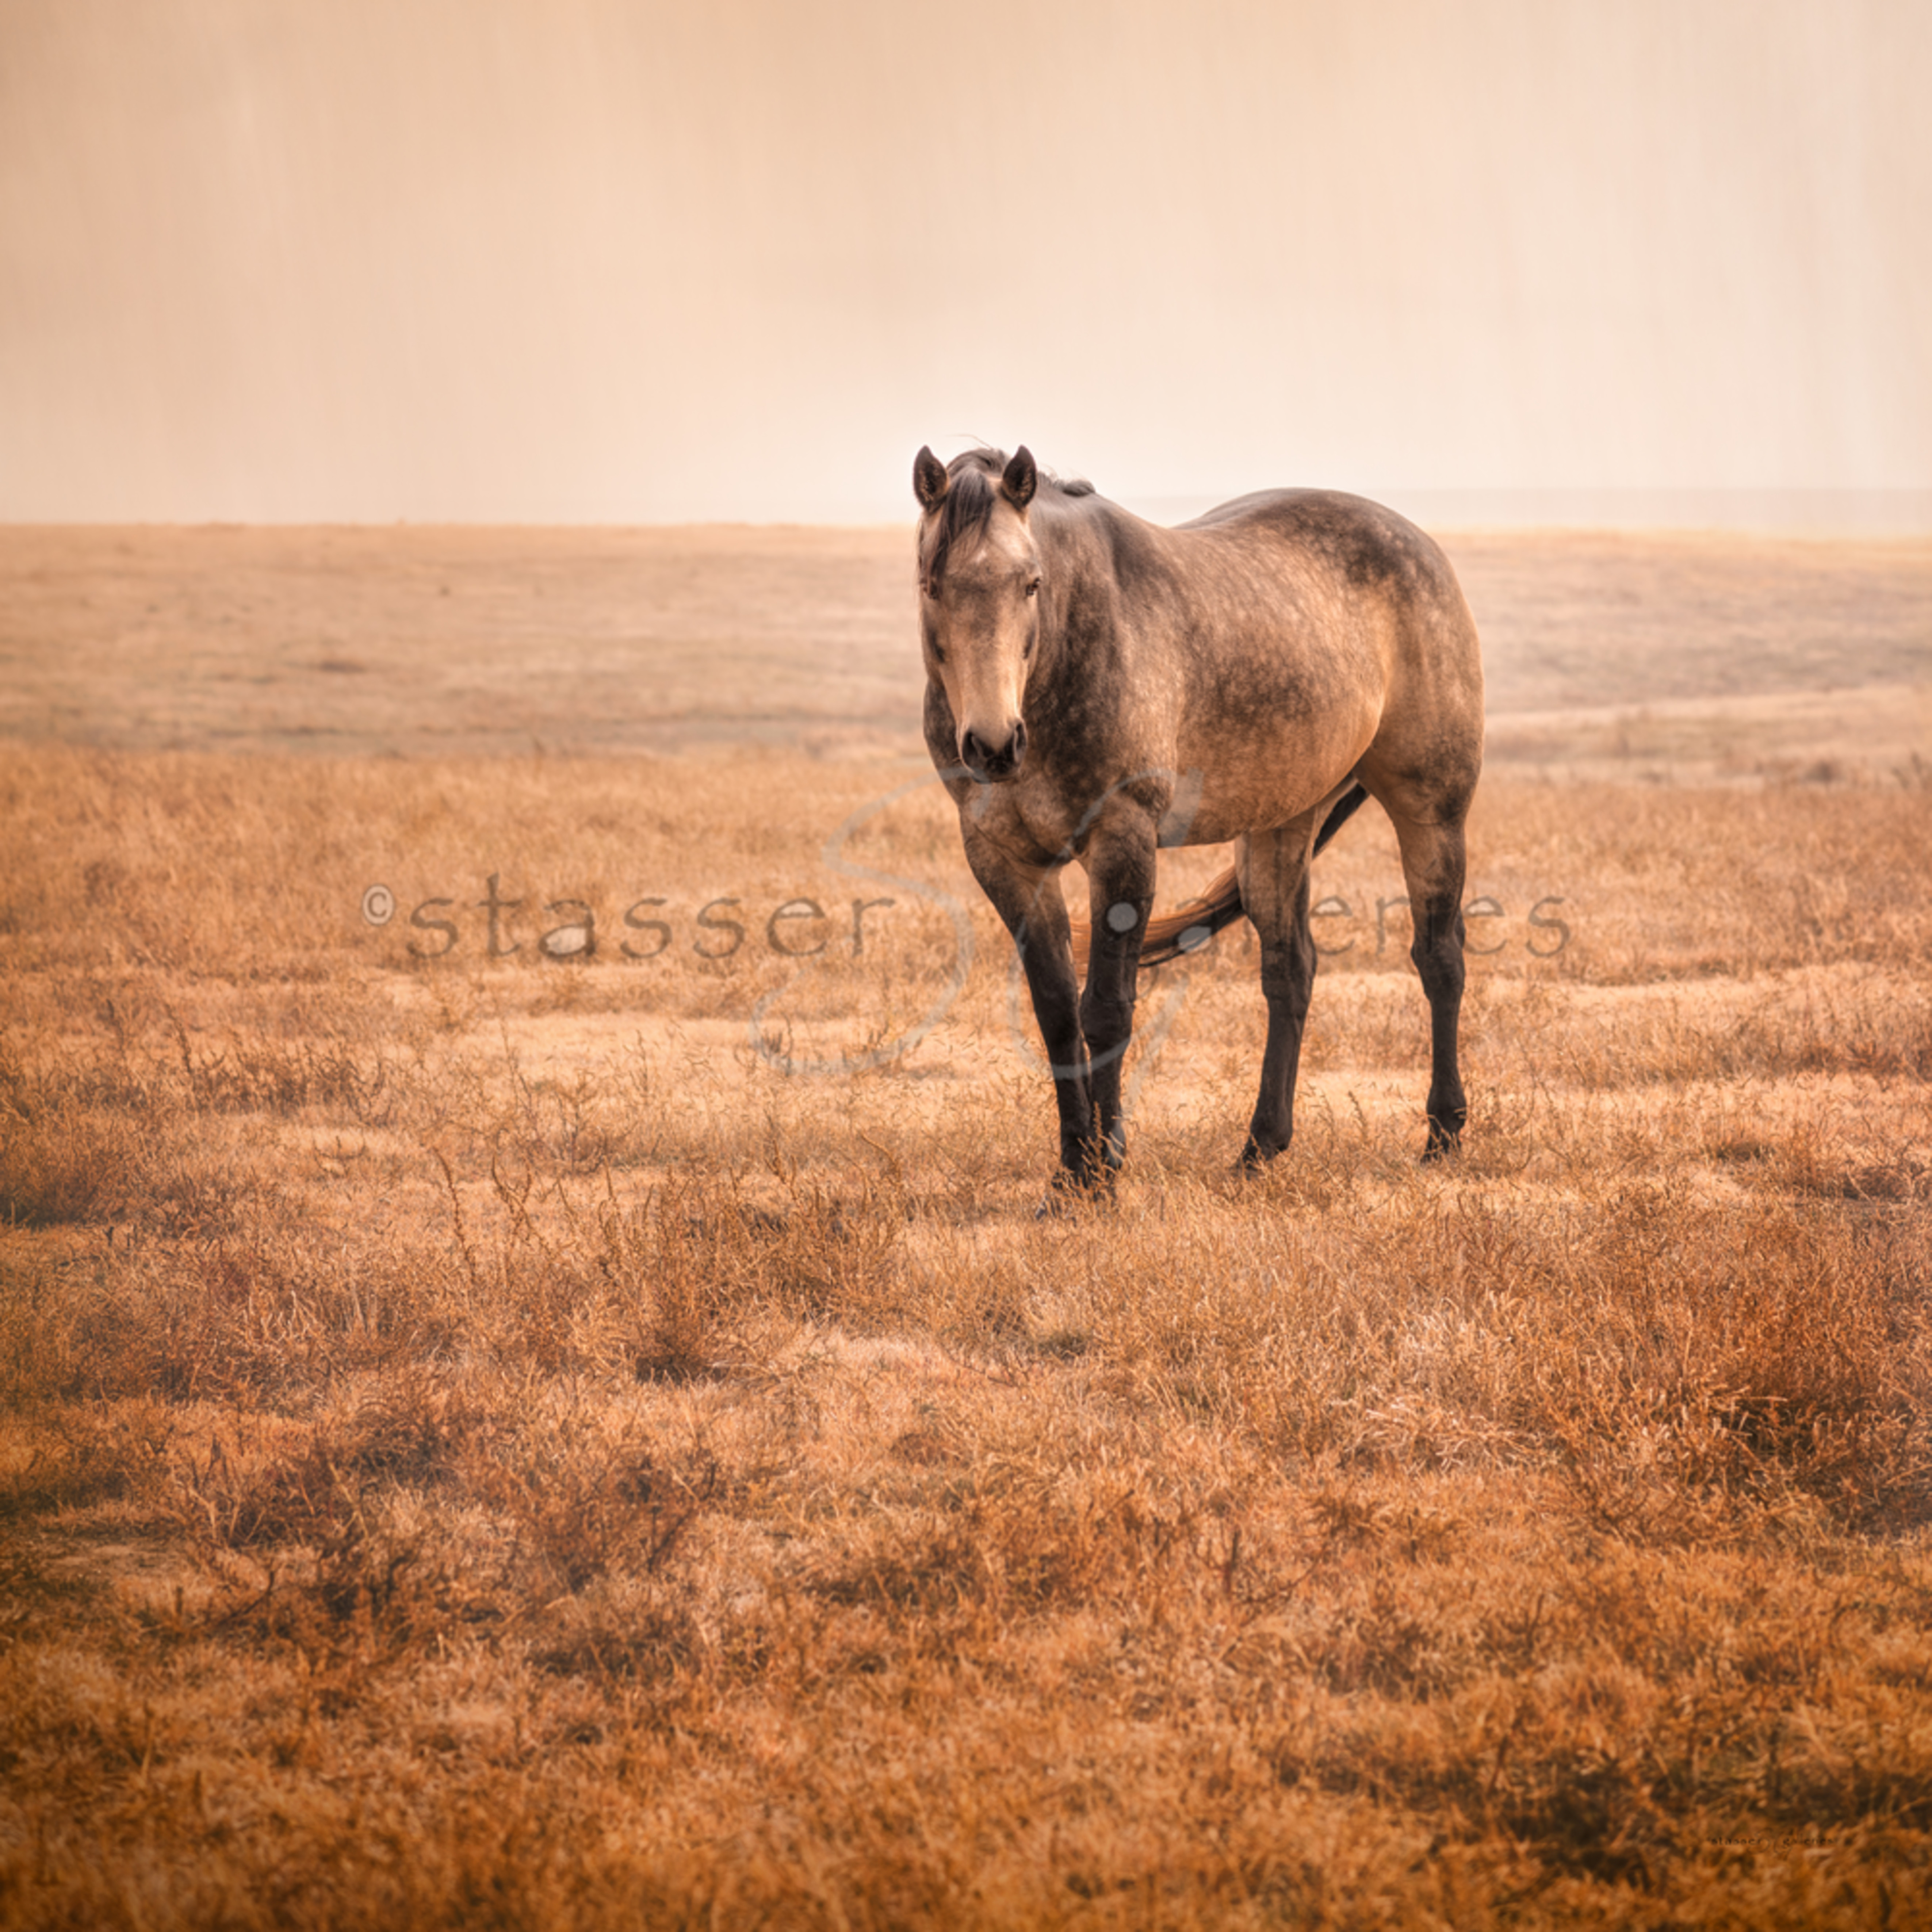 Horse with no name plsv9f